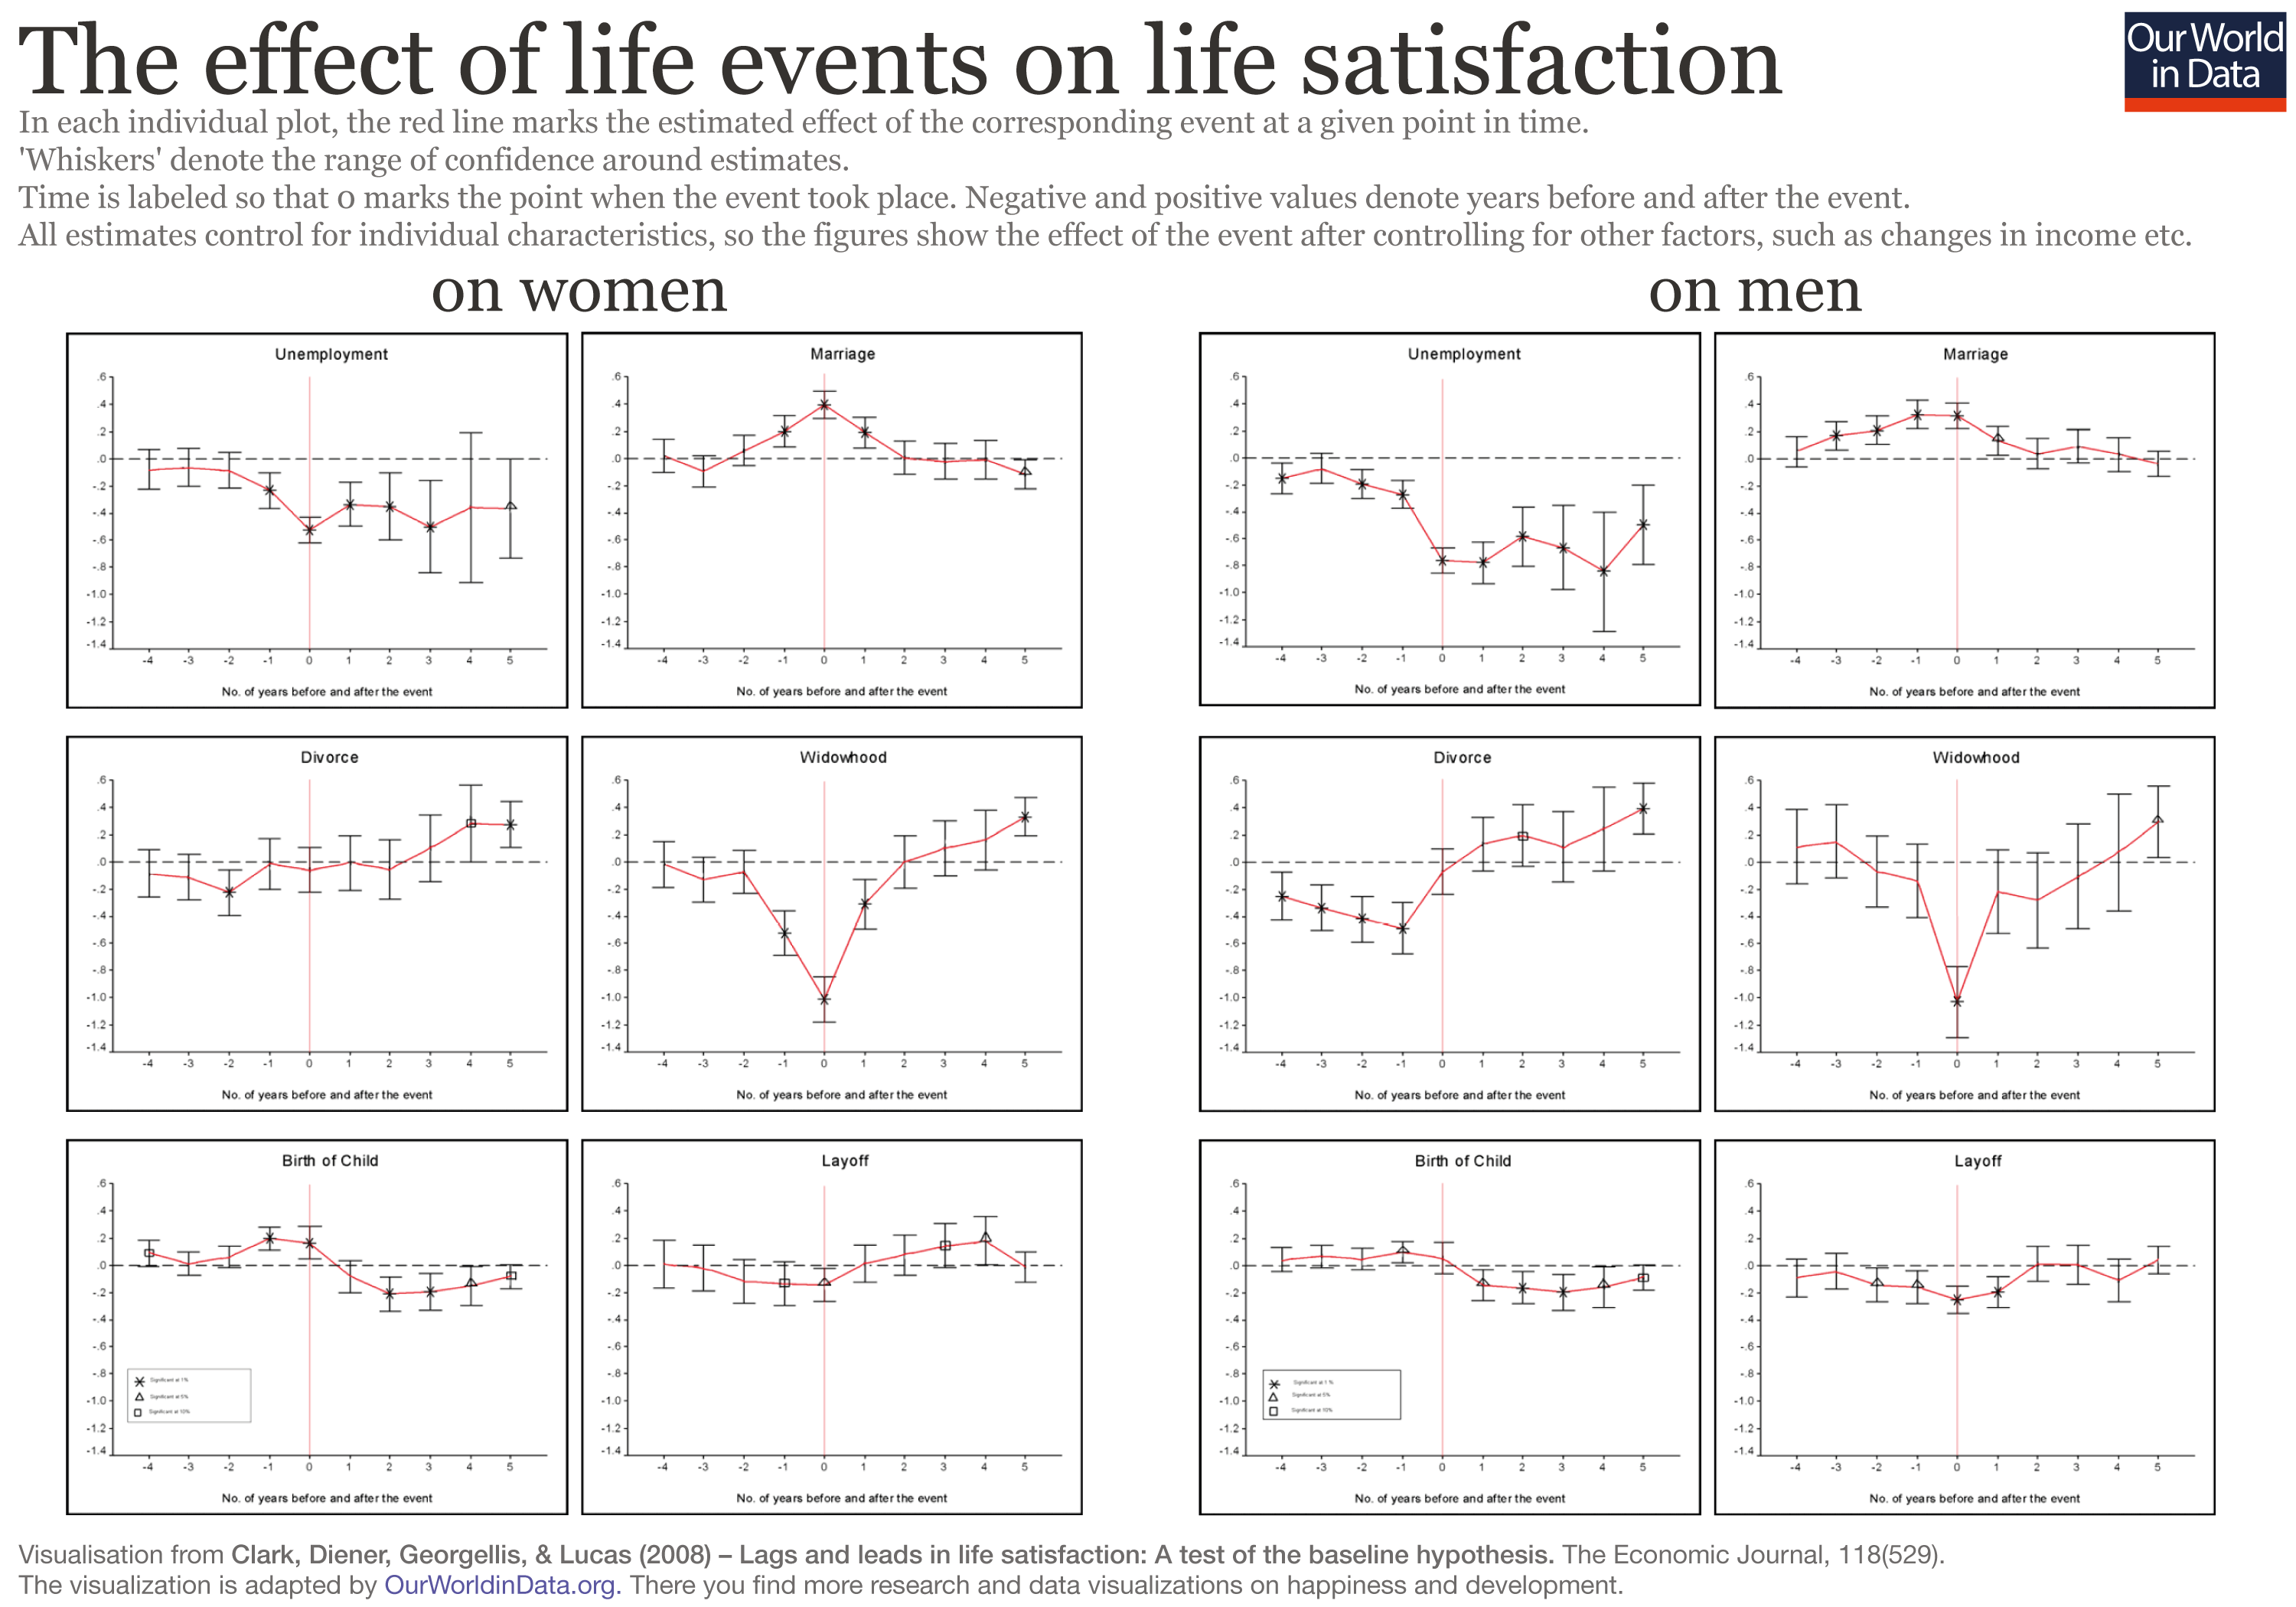 The effect of life events on life satisfaction